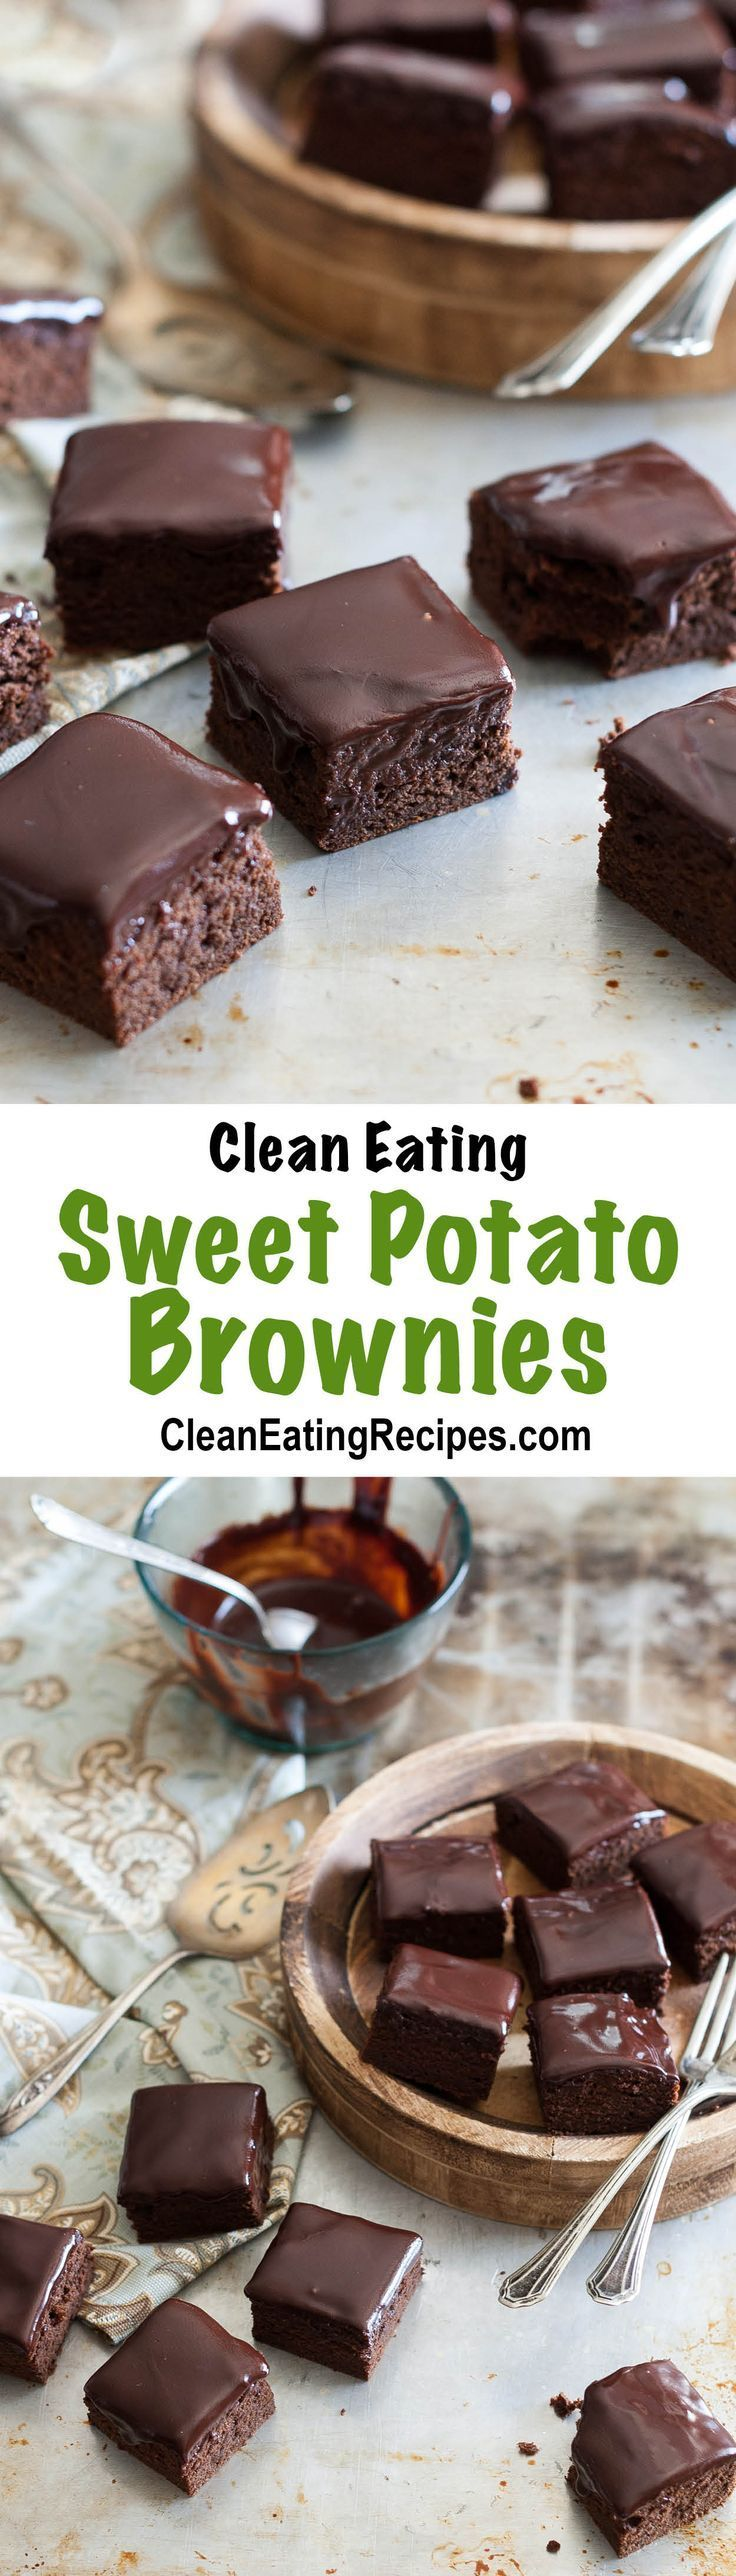 I love this Clean Eating brownies recipe because they are moist and rich from th... I love this Cle